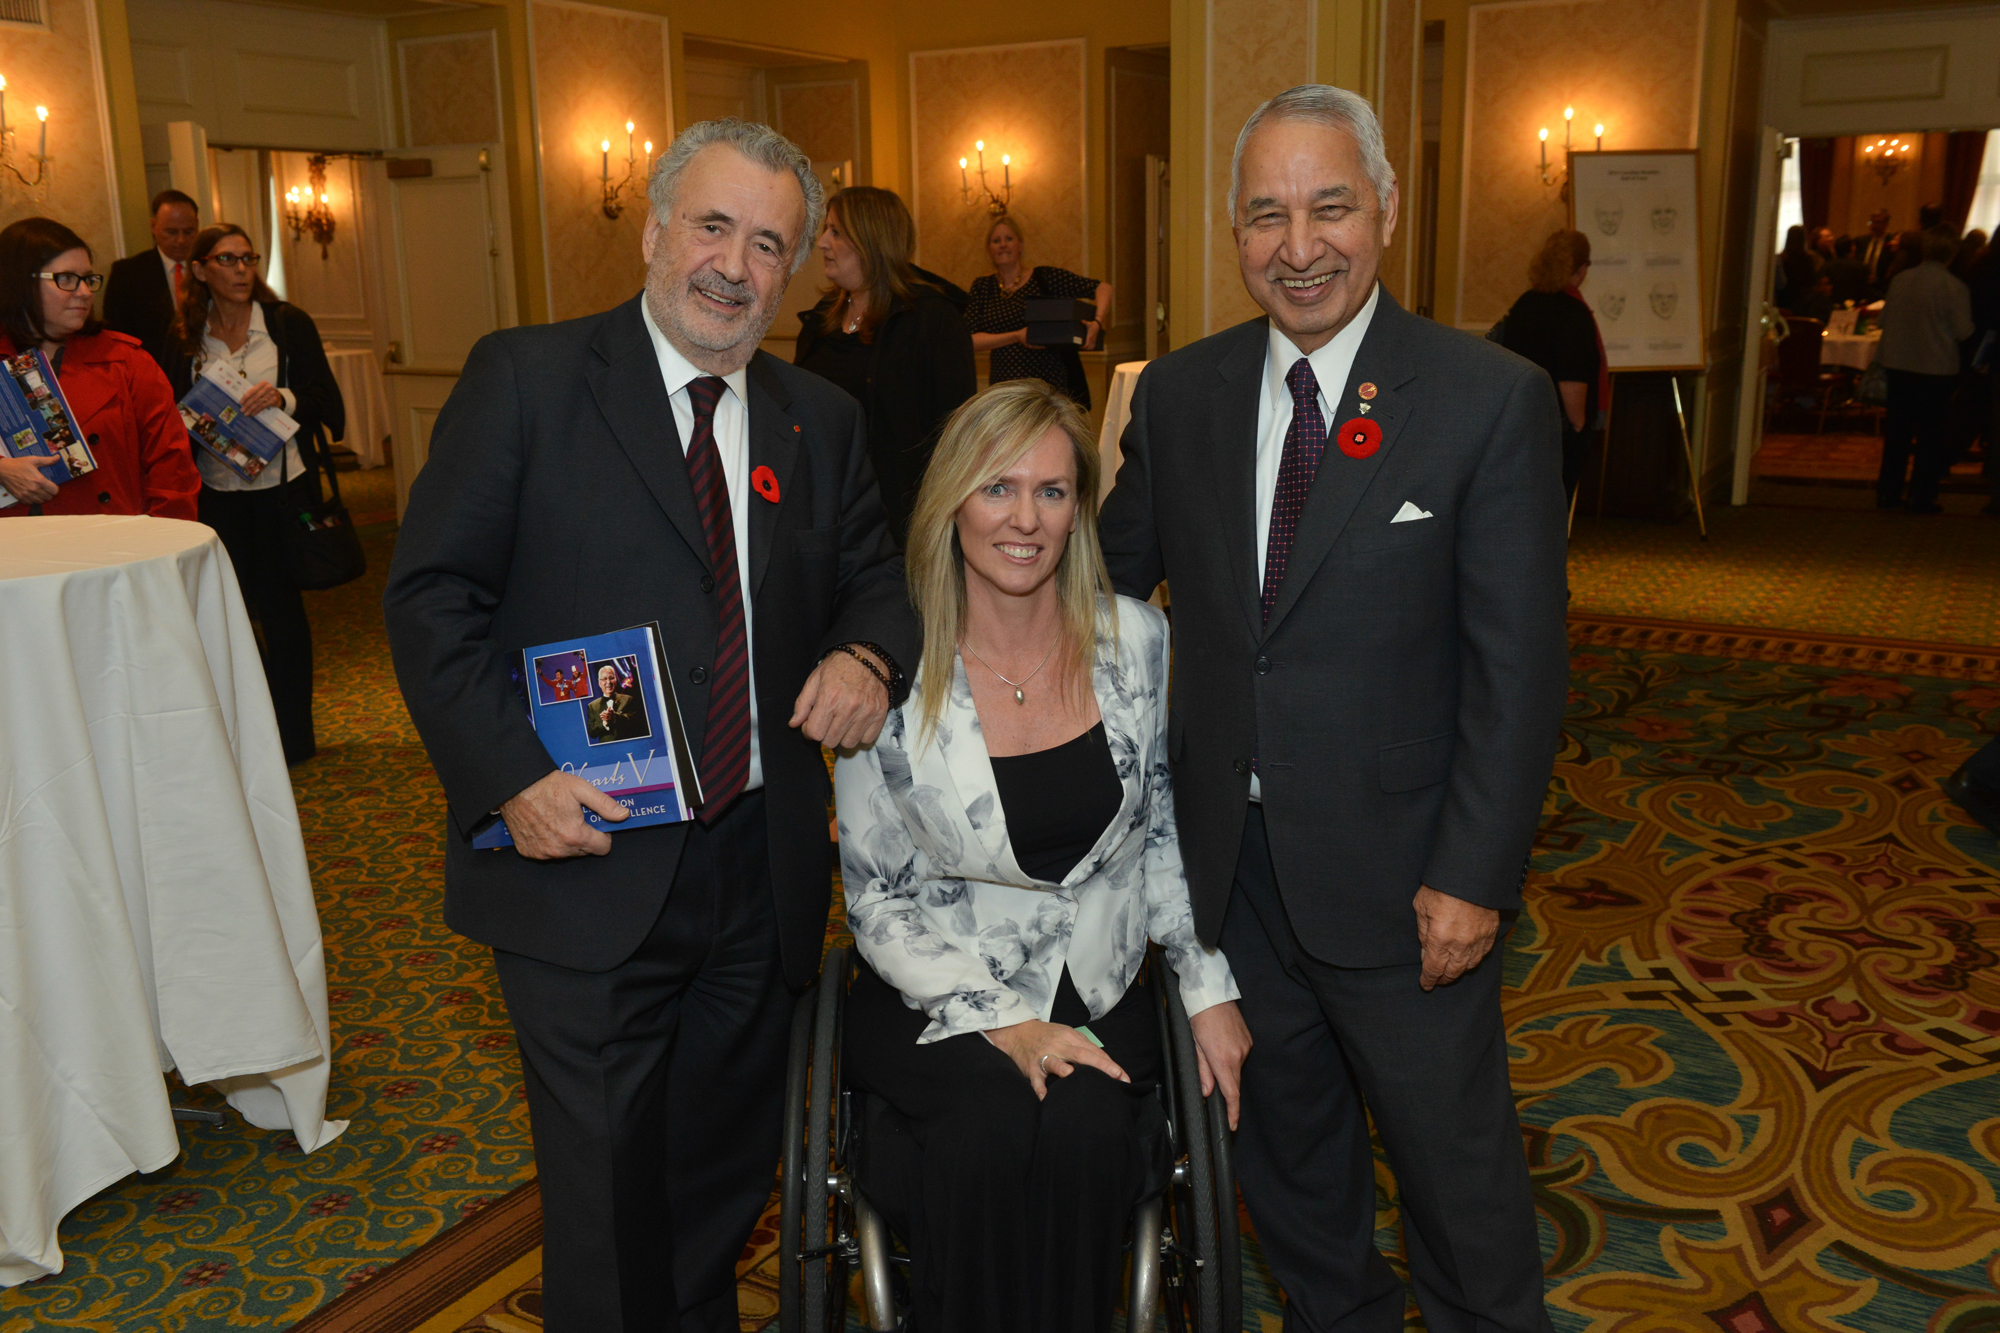 2014 Canadian Disability Hall of Fame